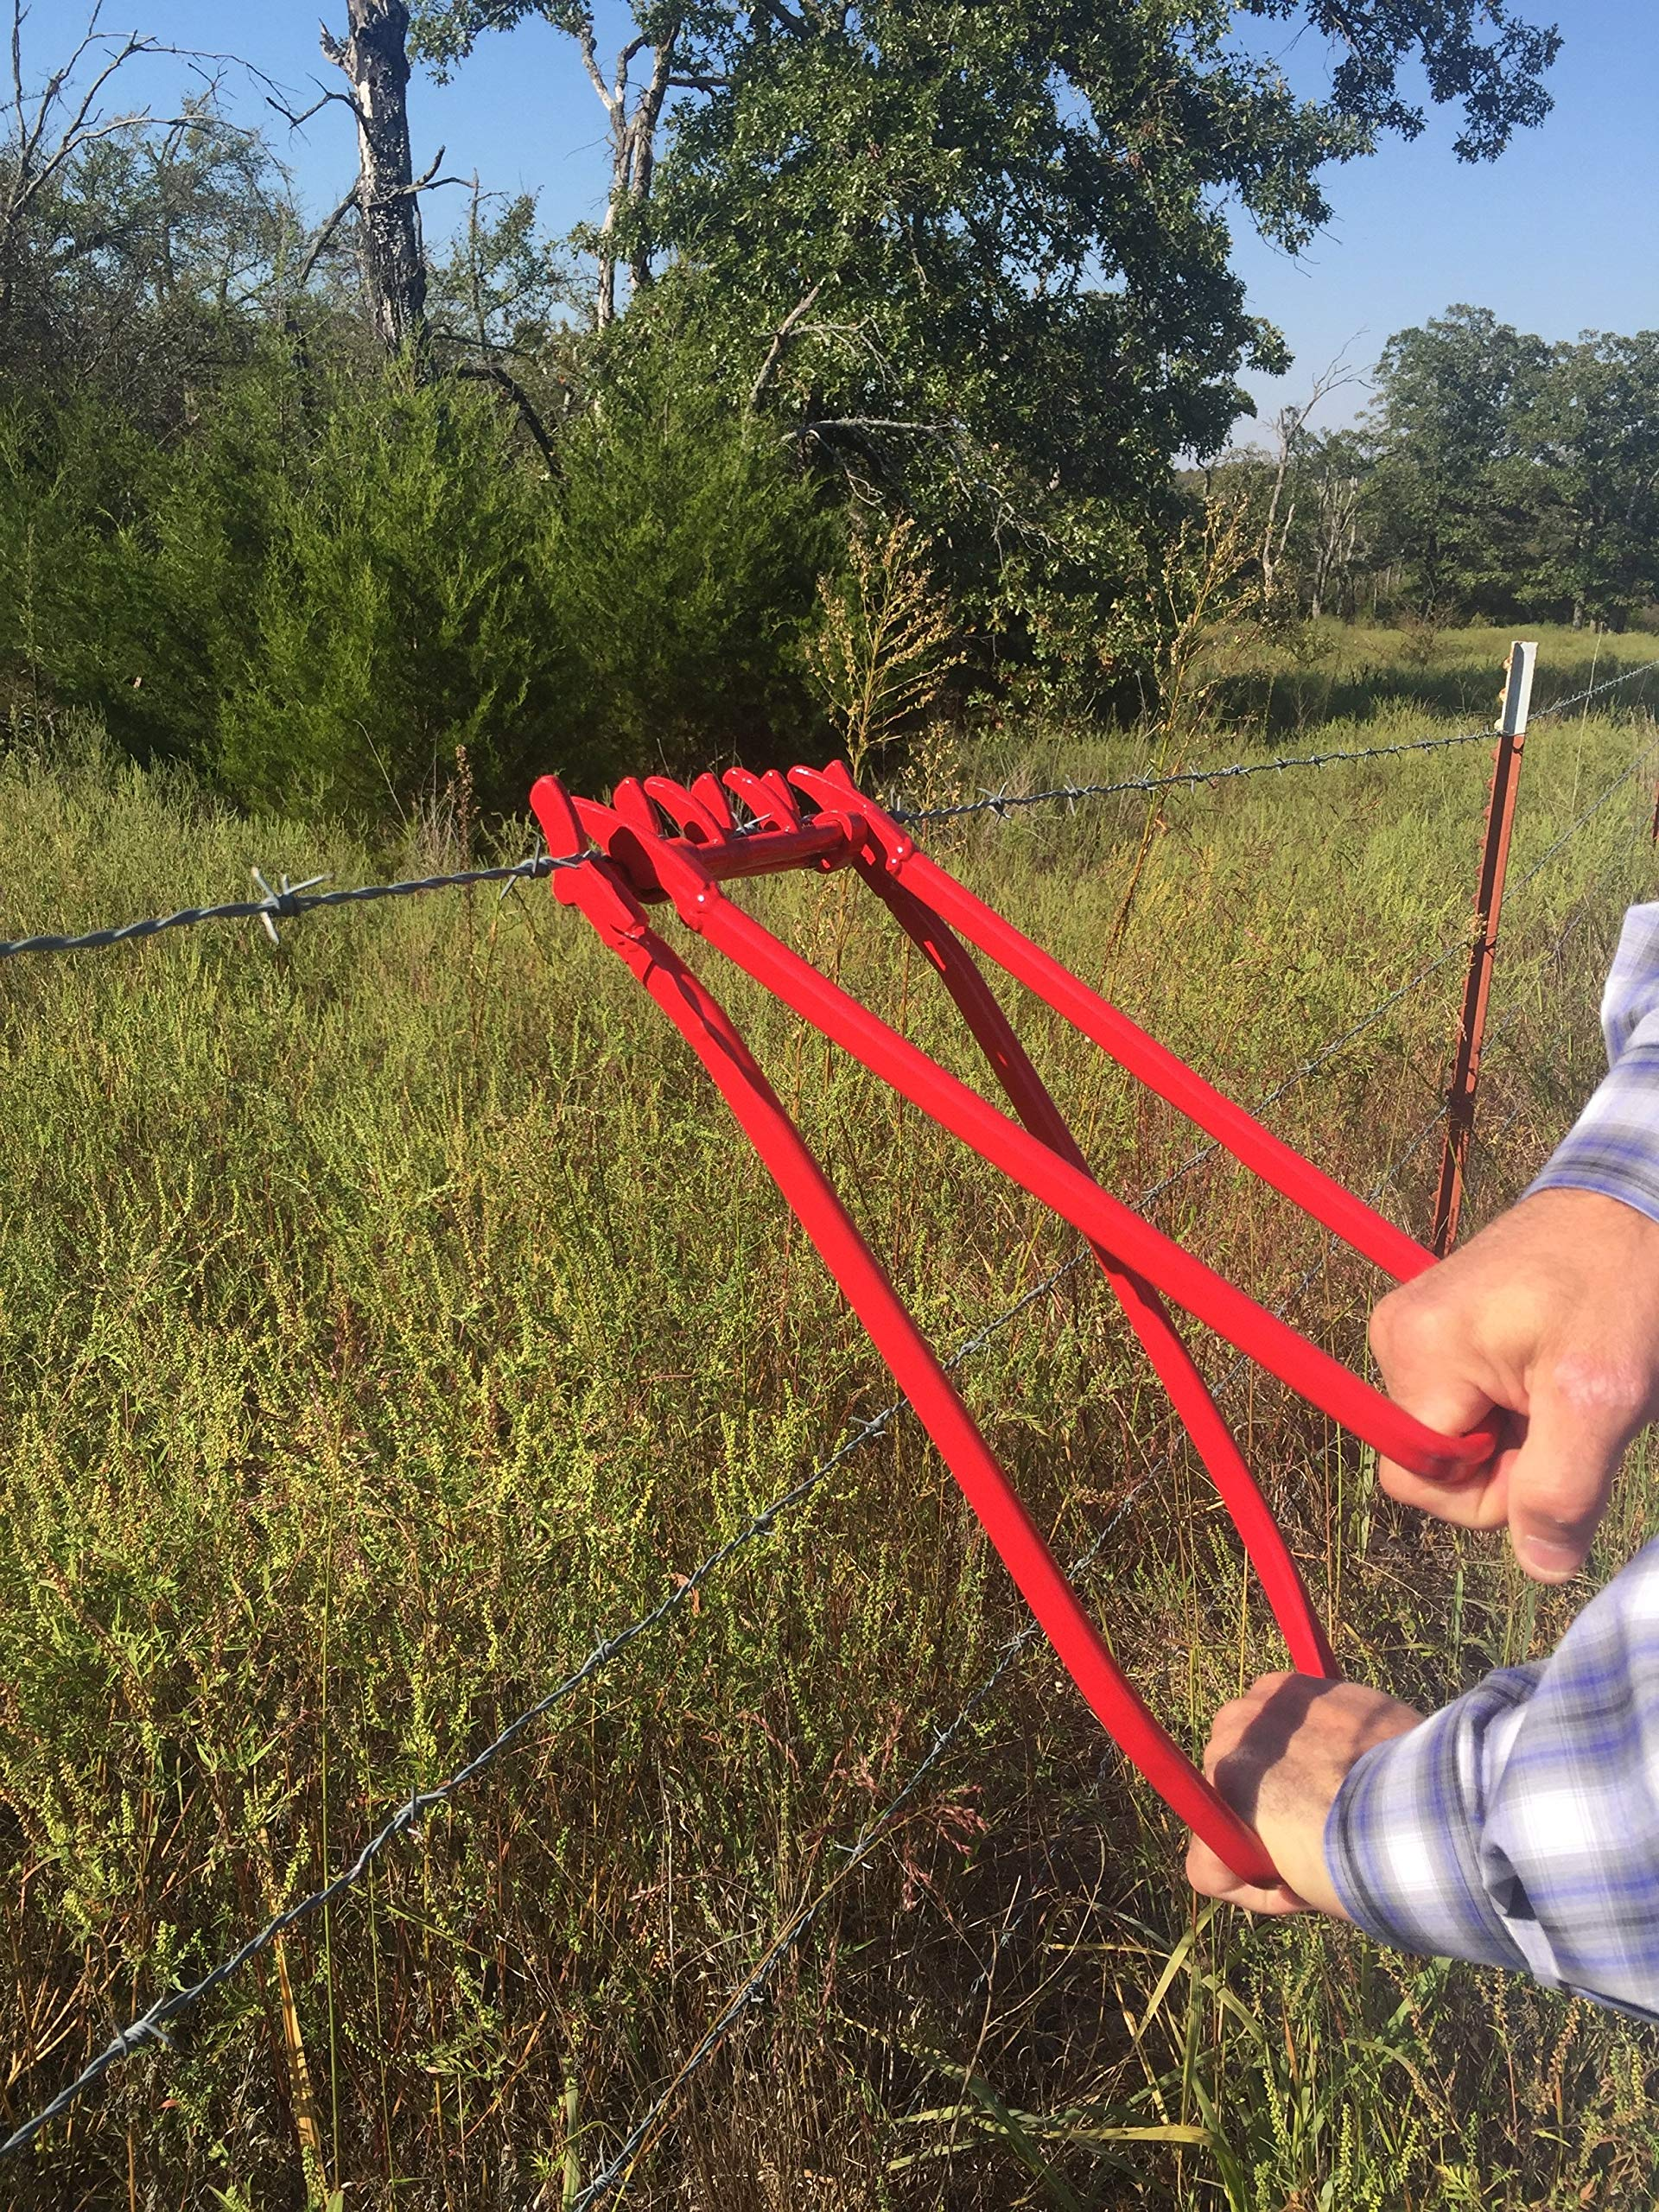 Wire Tight Fence Crimping Tool - Ranch Wire Tightener and Repair. Slick, High Tensile and Barbed Wire by Wire Tight (Image #5)